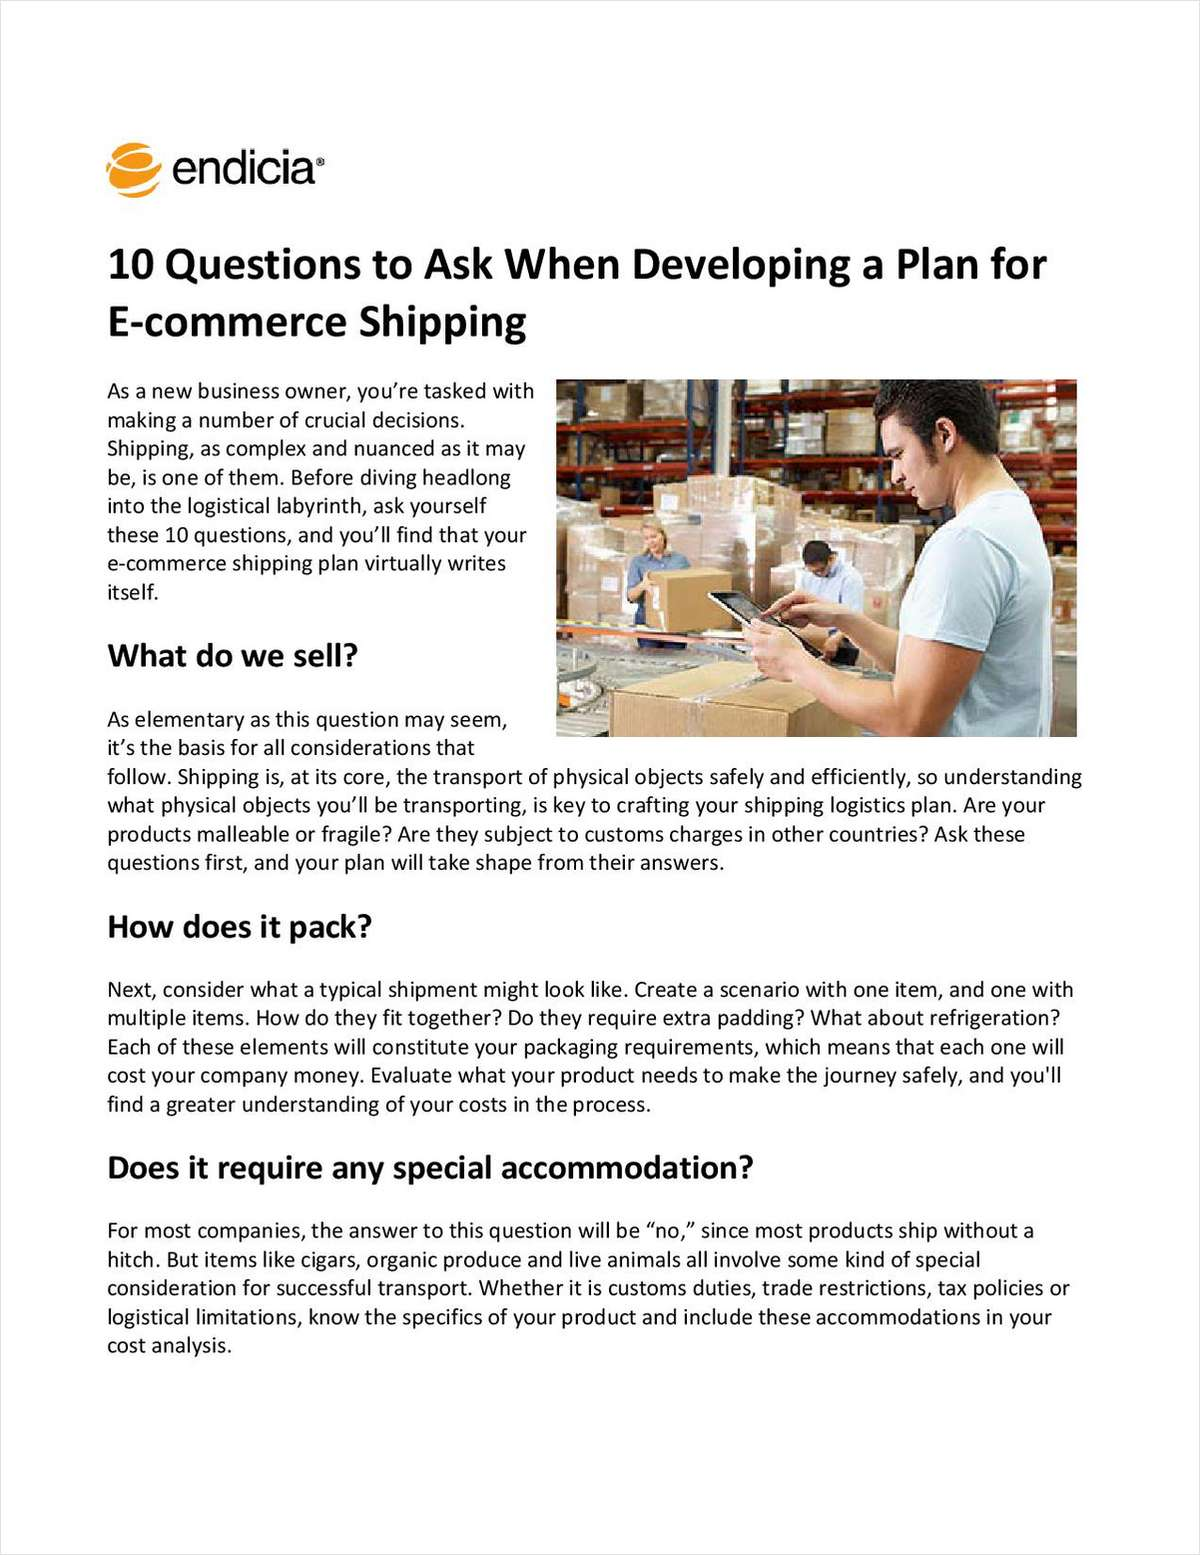 10 Questions to Ask When Developing a Plan for E-commerce Shipping